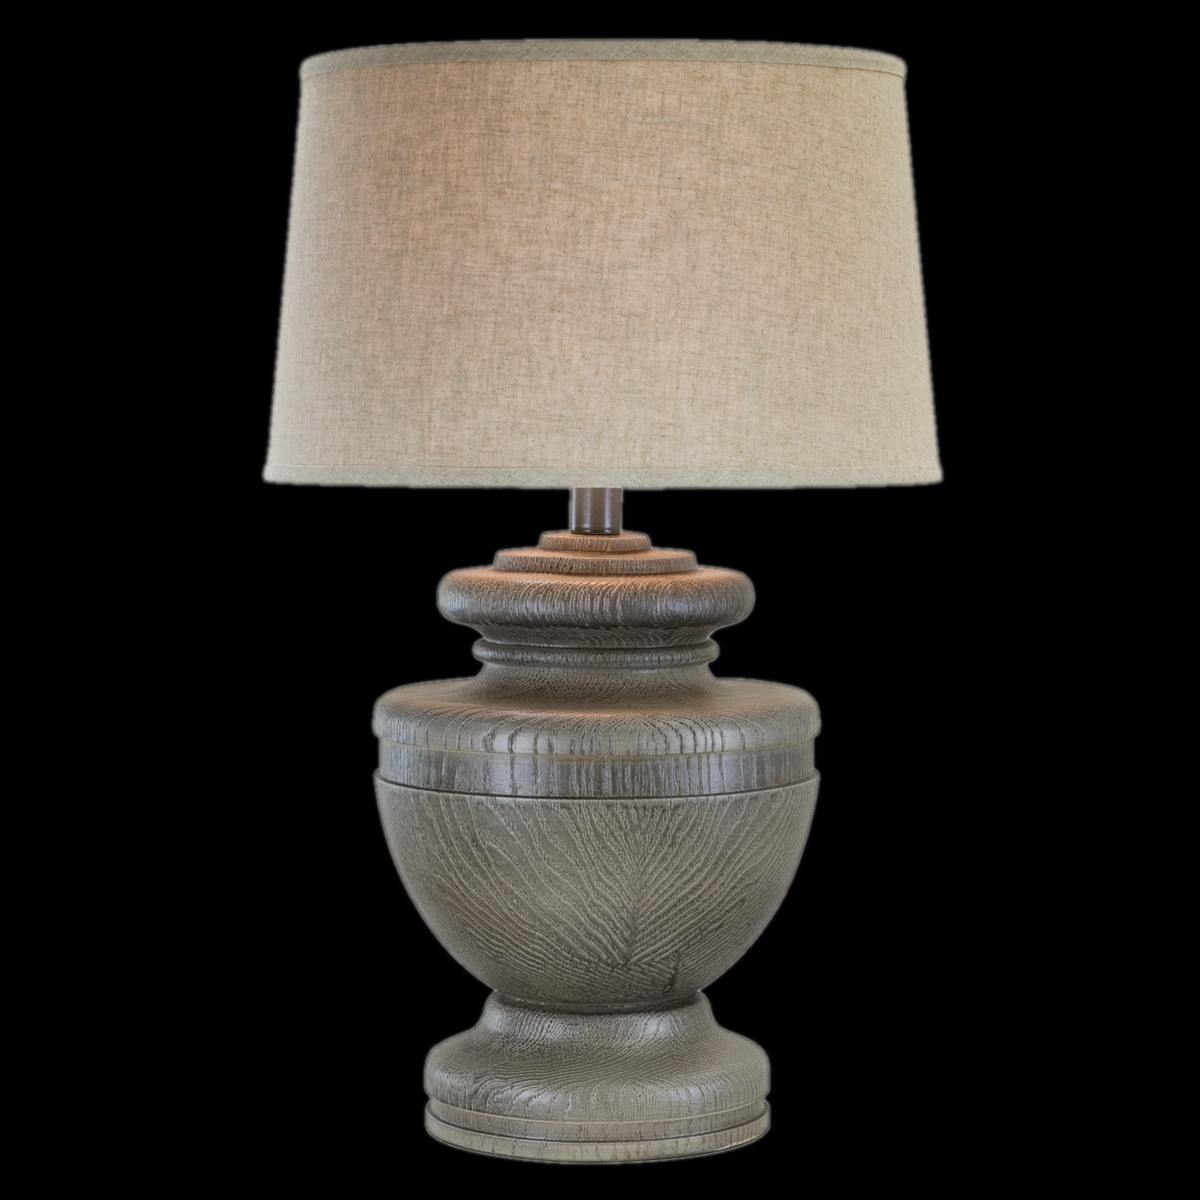 Anthony California Table Lamp With Empire Shade In Slate L